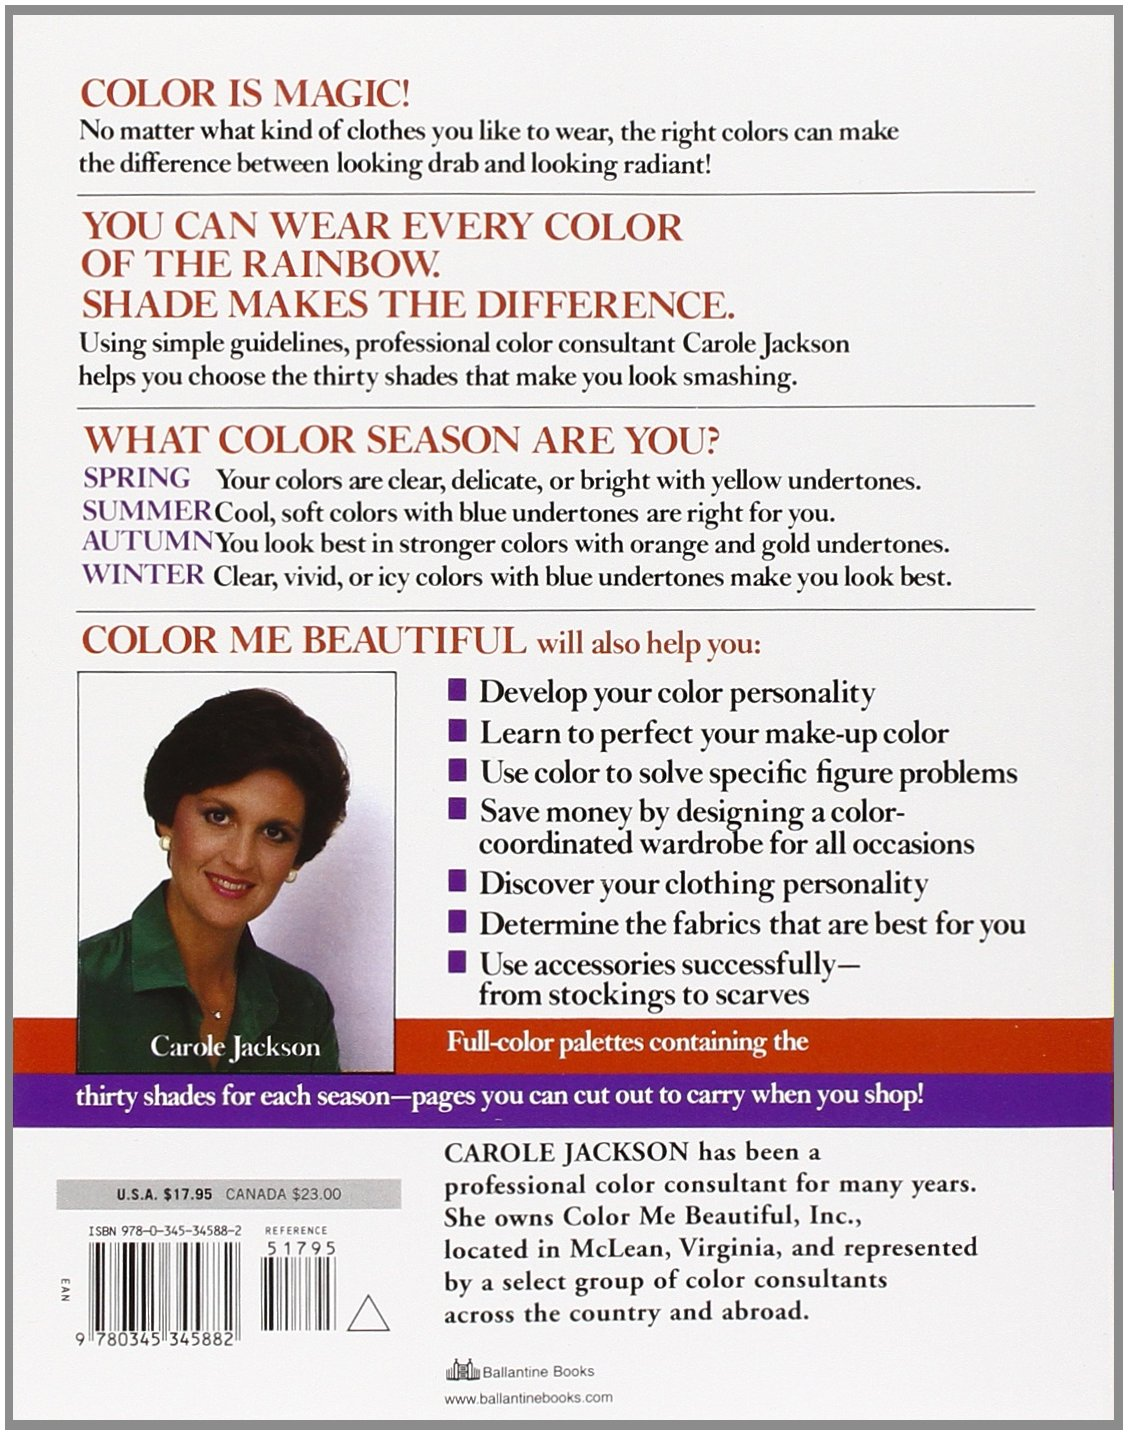 Color me beautiful discover your natural beauty through the colors color me beautiful discover your natural beauty through the colors that make you look great and feel fabulous carole jackson 8601420148499 amazon fandeluxe Choice Image